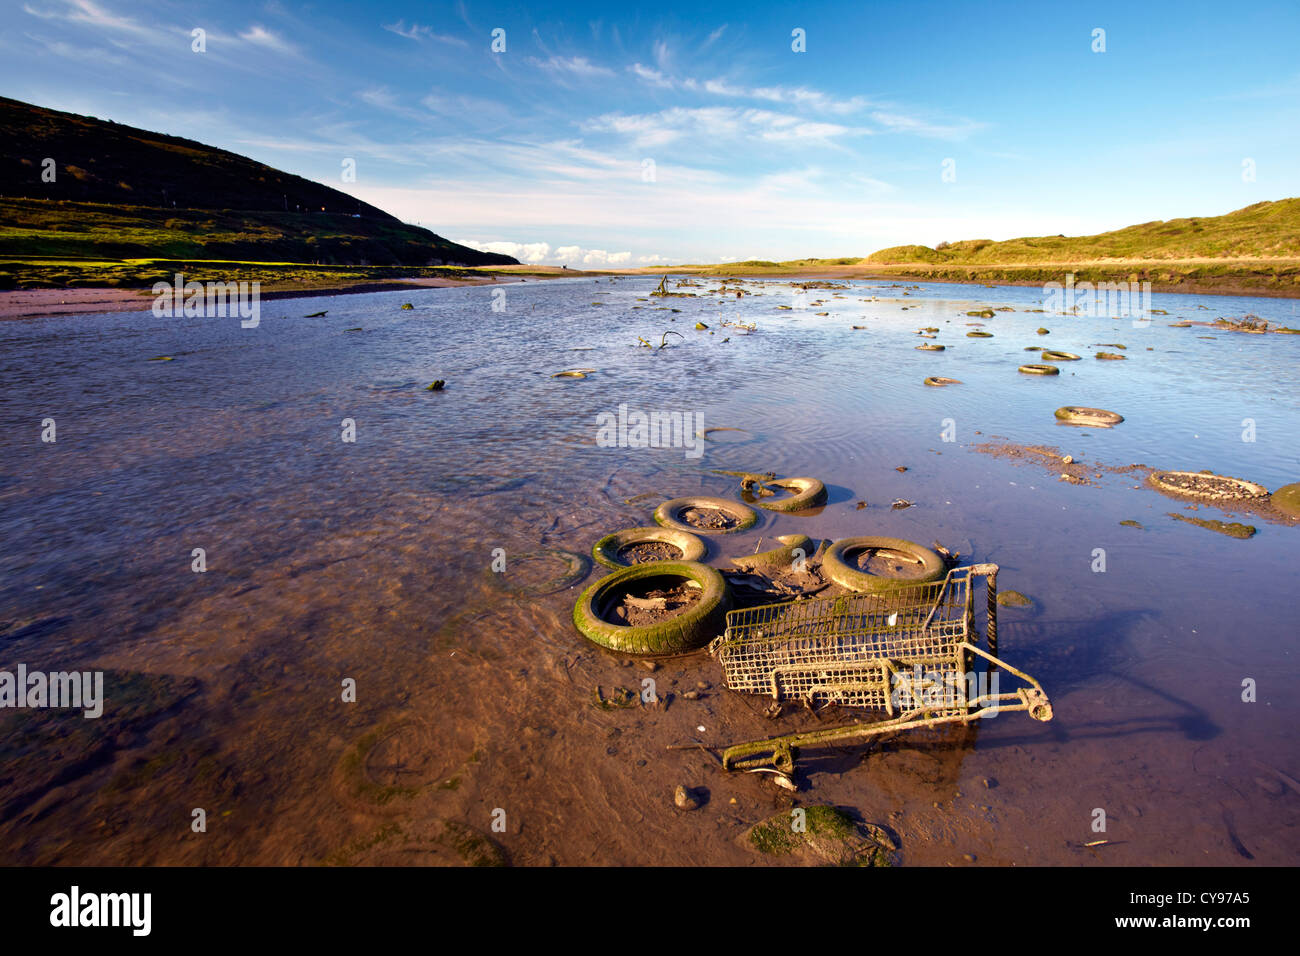 Old shopping trolley and tyres in the estuary of the River Ogmore, Bridgend, South Wales - Stock Image